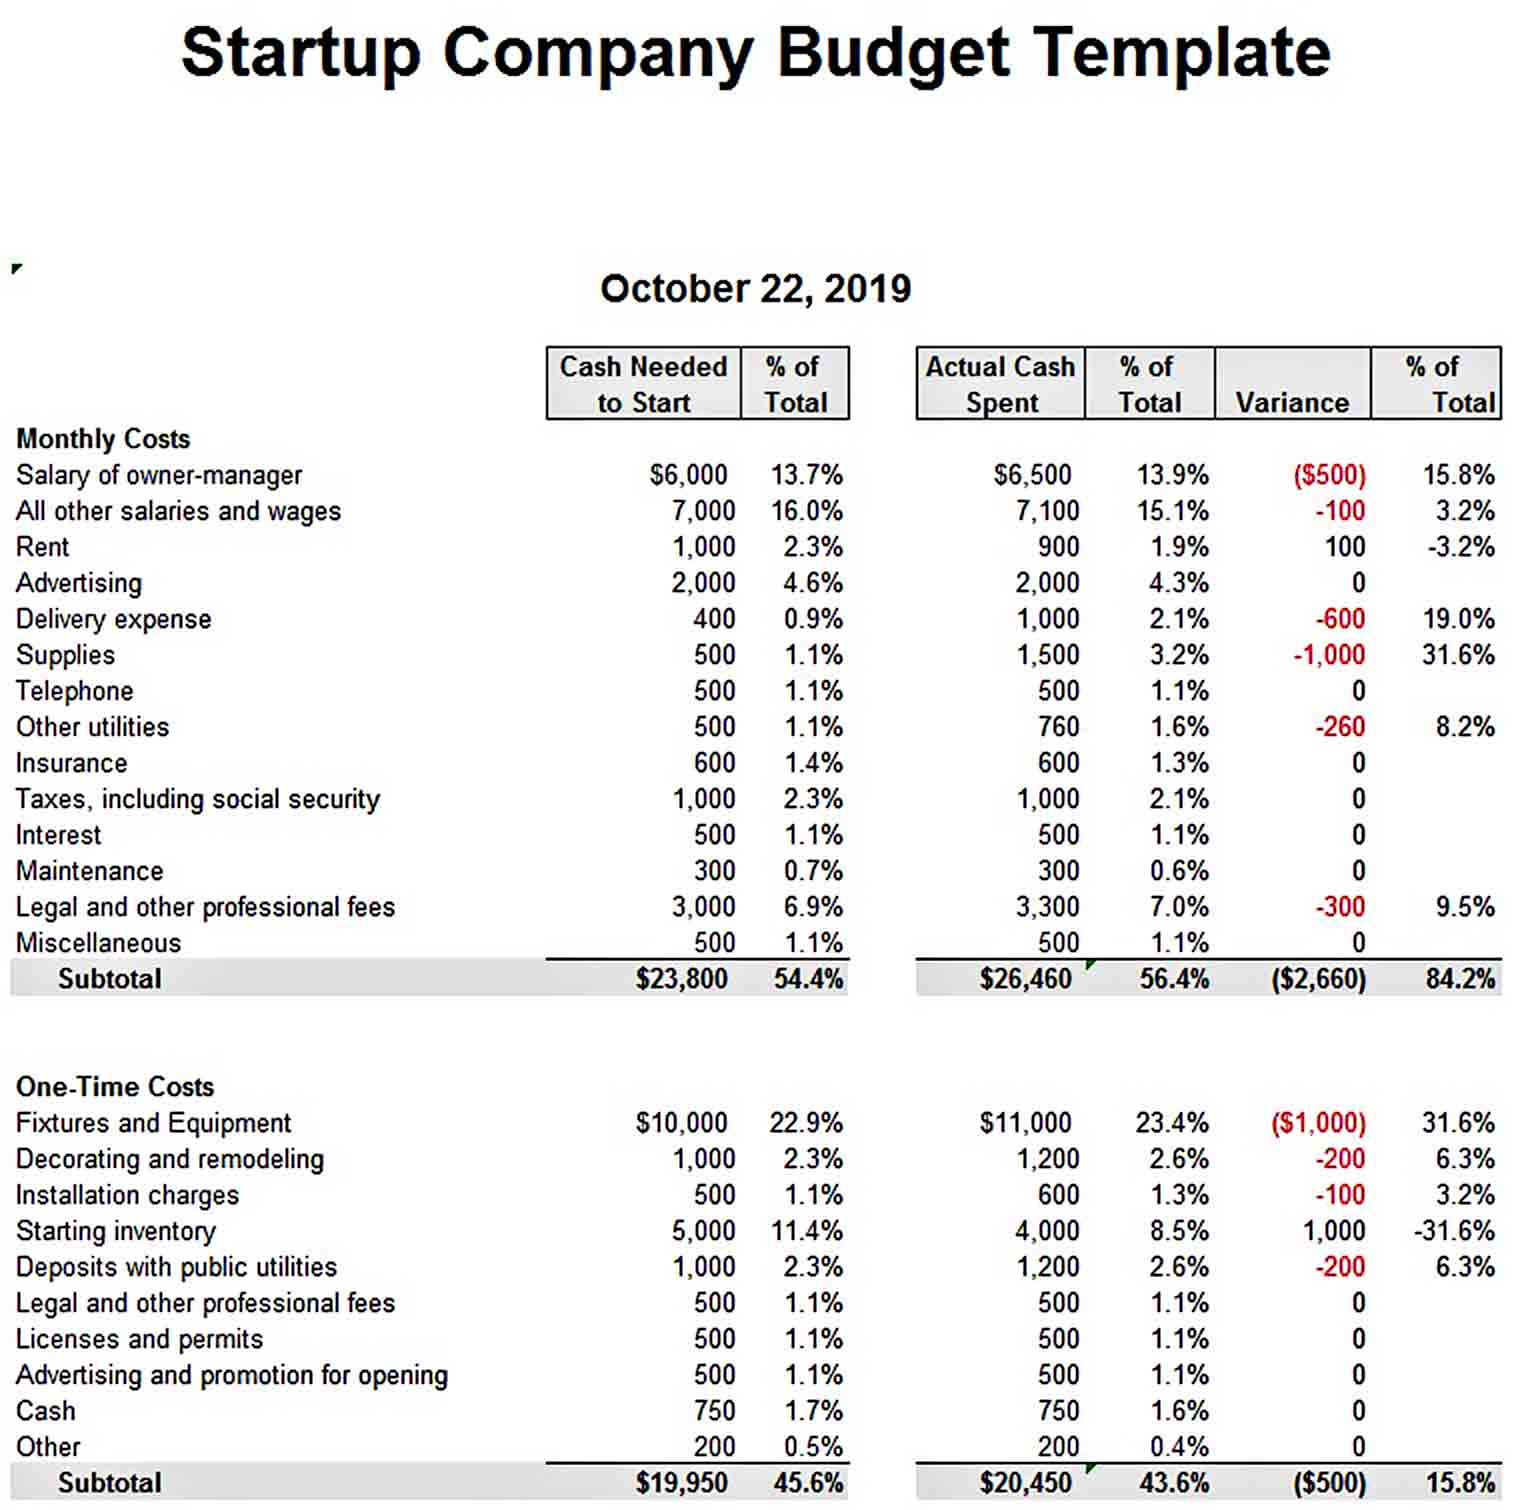 Startup Company Budget Template sample